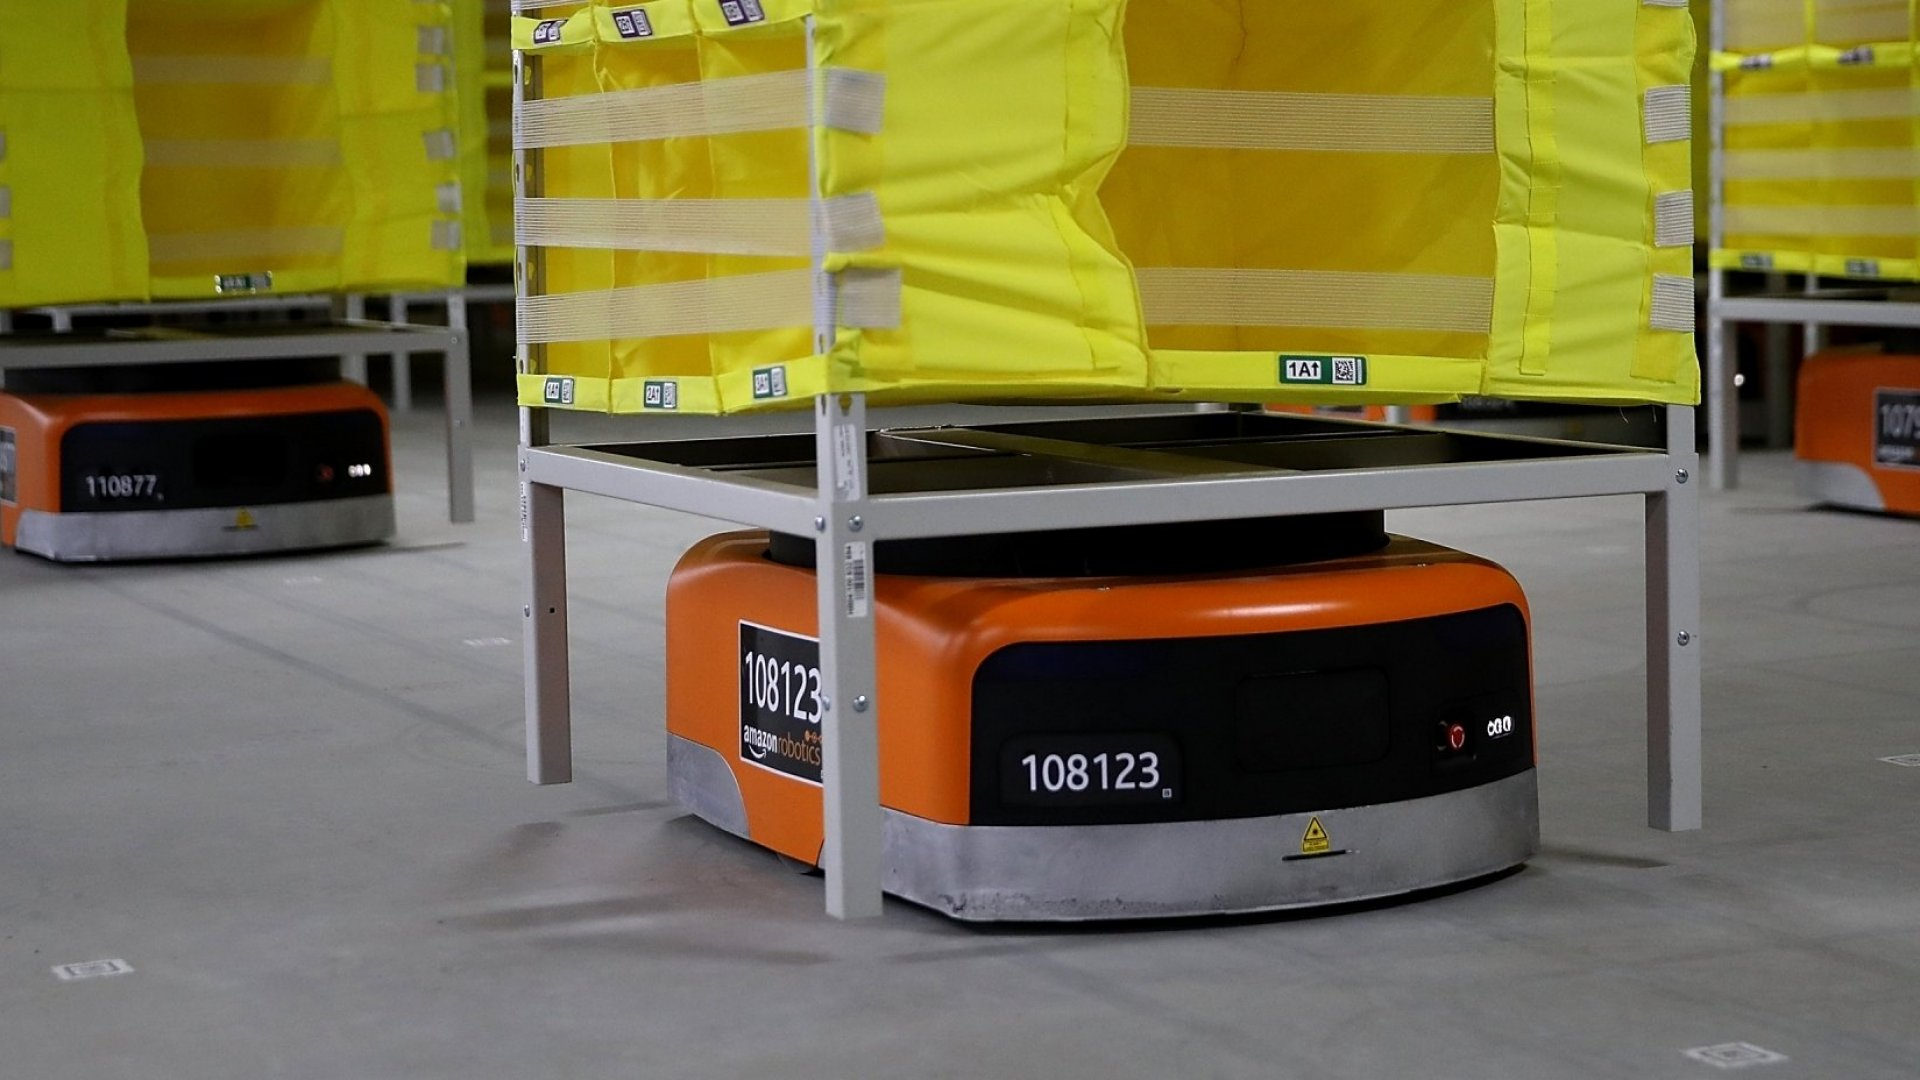 Robots and Automation Likely to Create More Jobs in E-Commerce